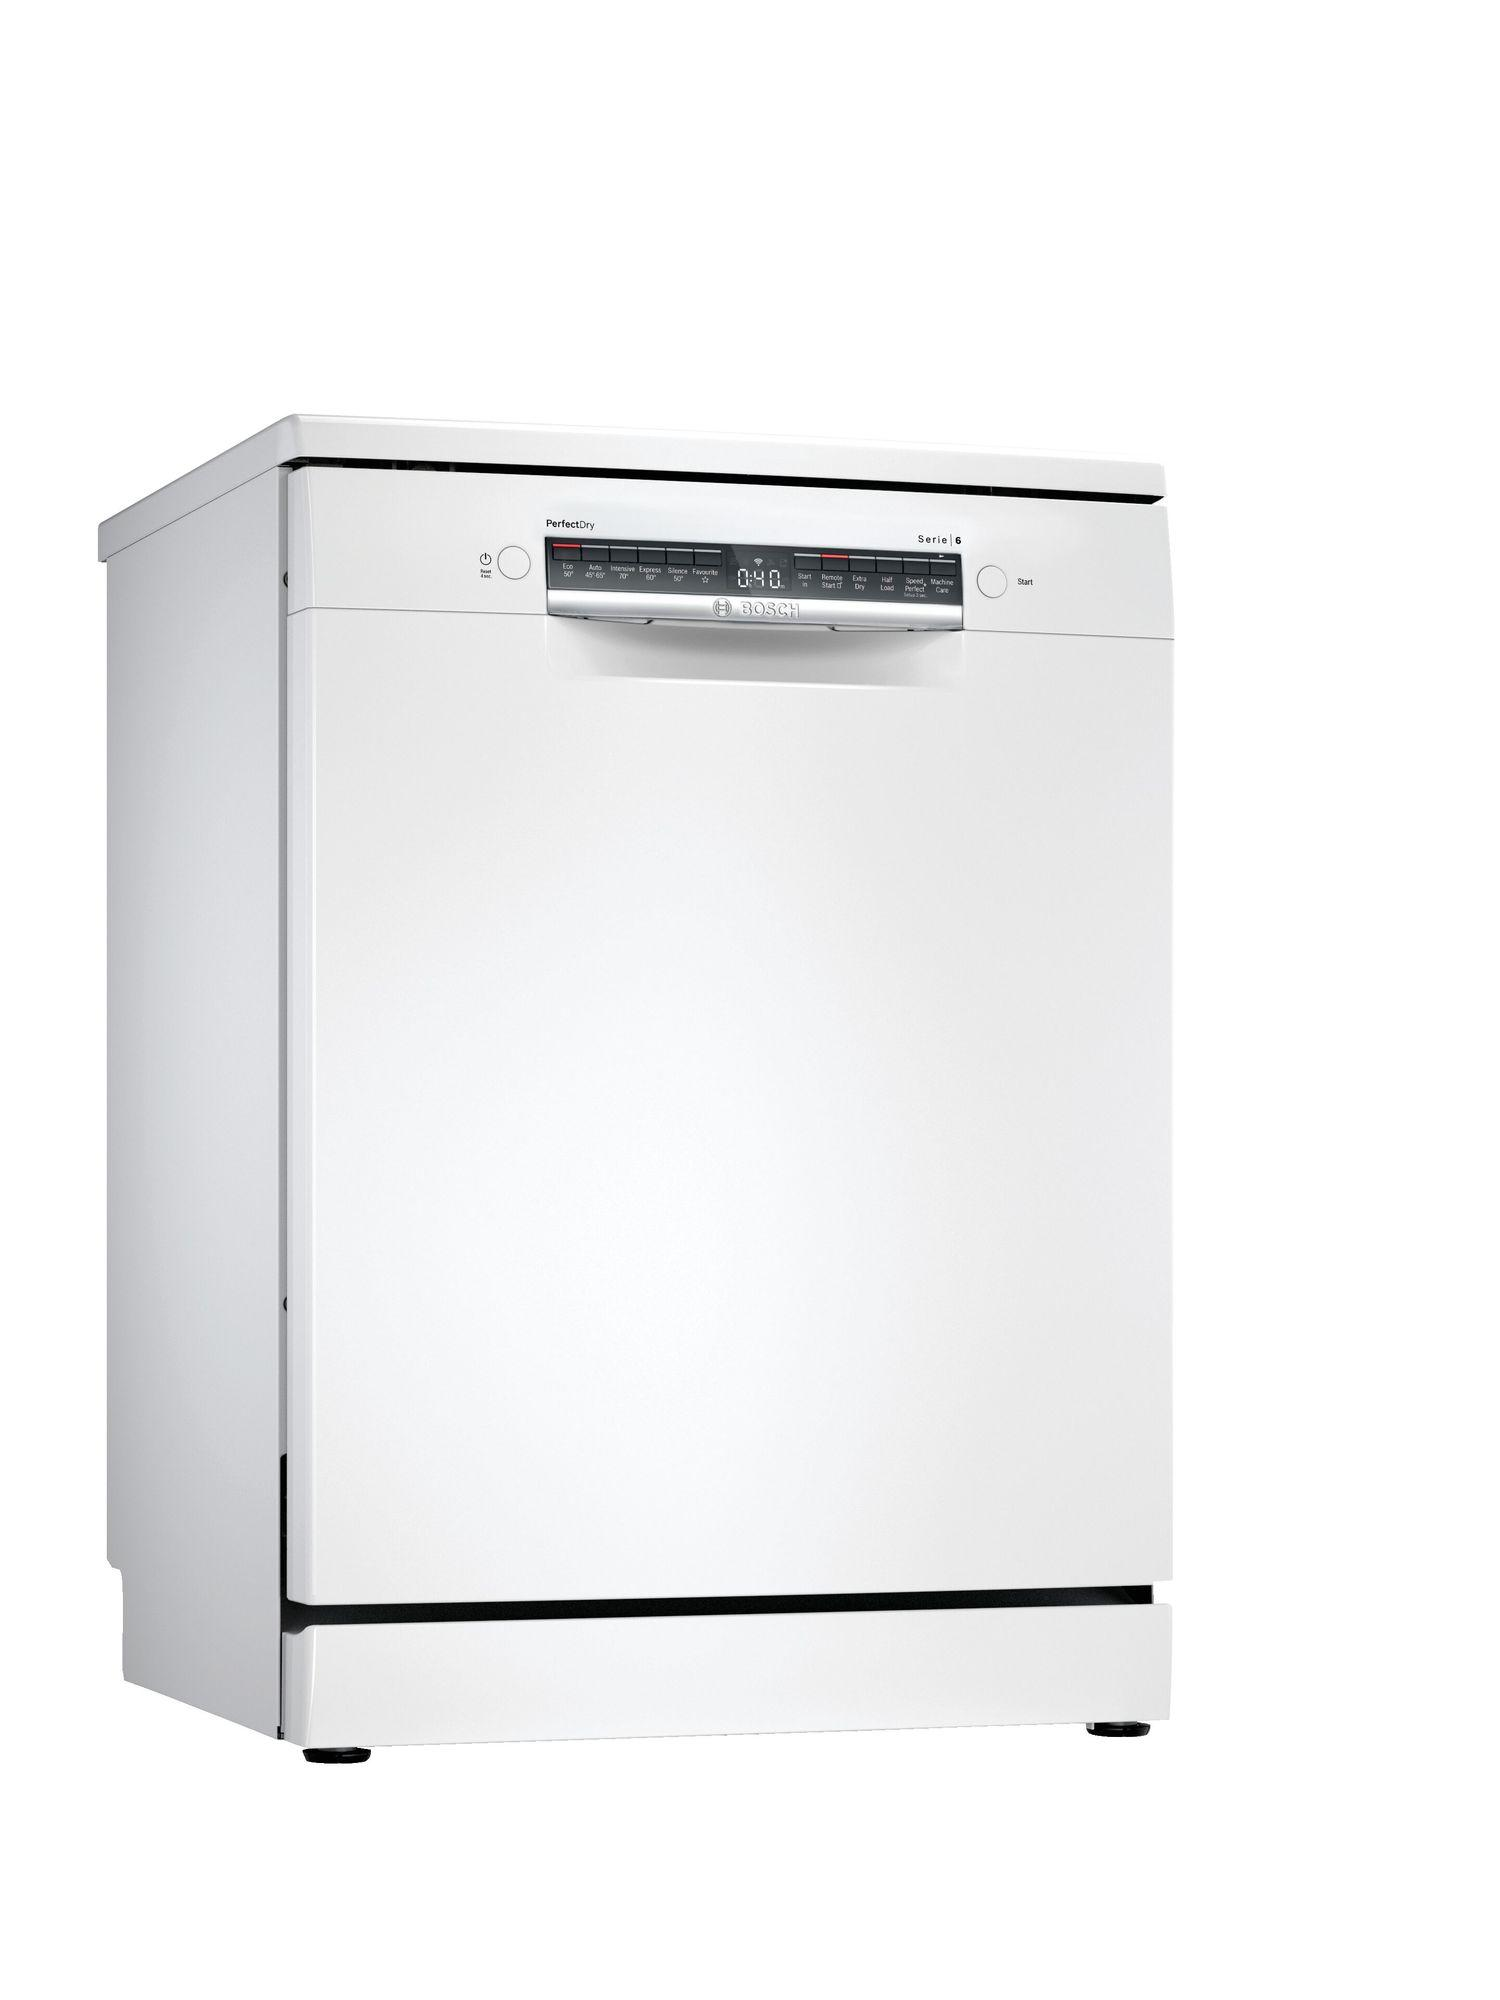 Image of Serie 6 SMS6ZCW00G 60cm Standard Dishwasher   White